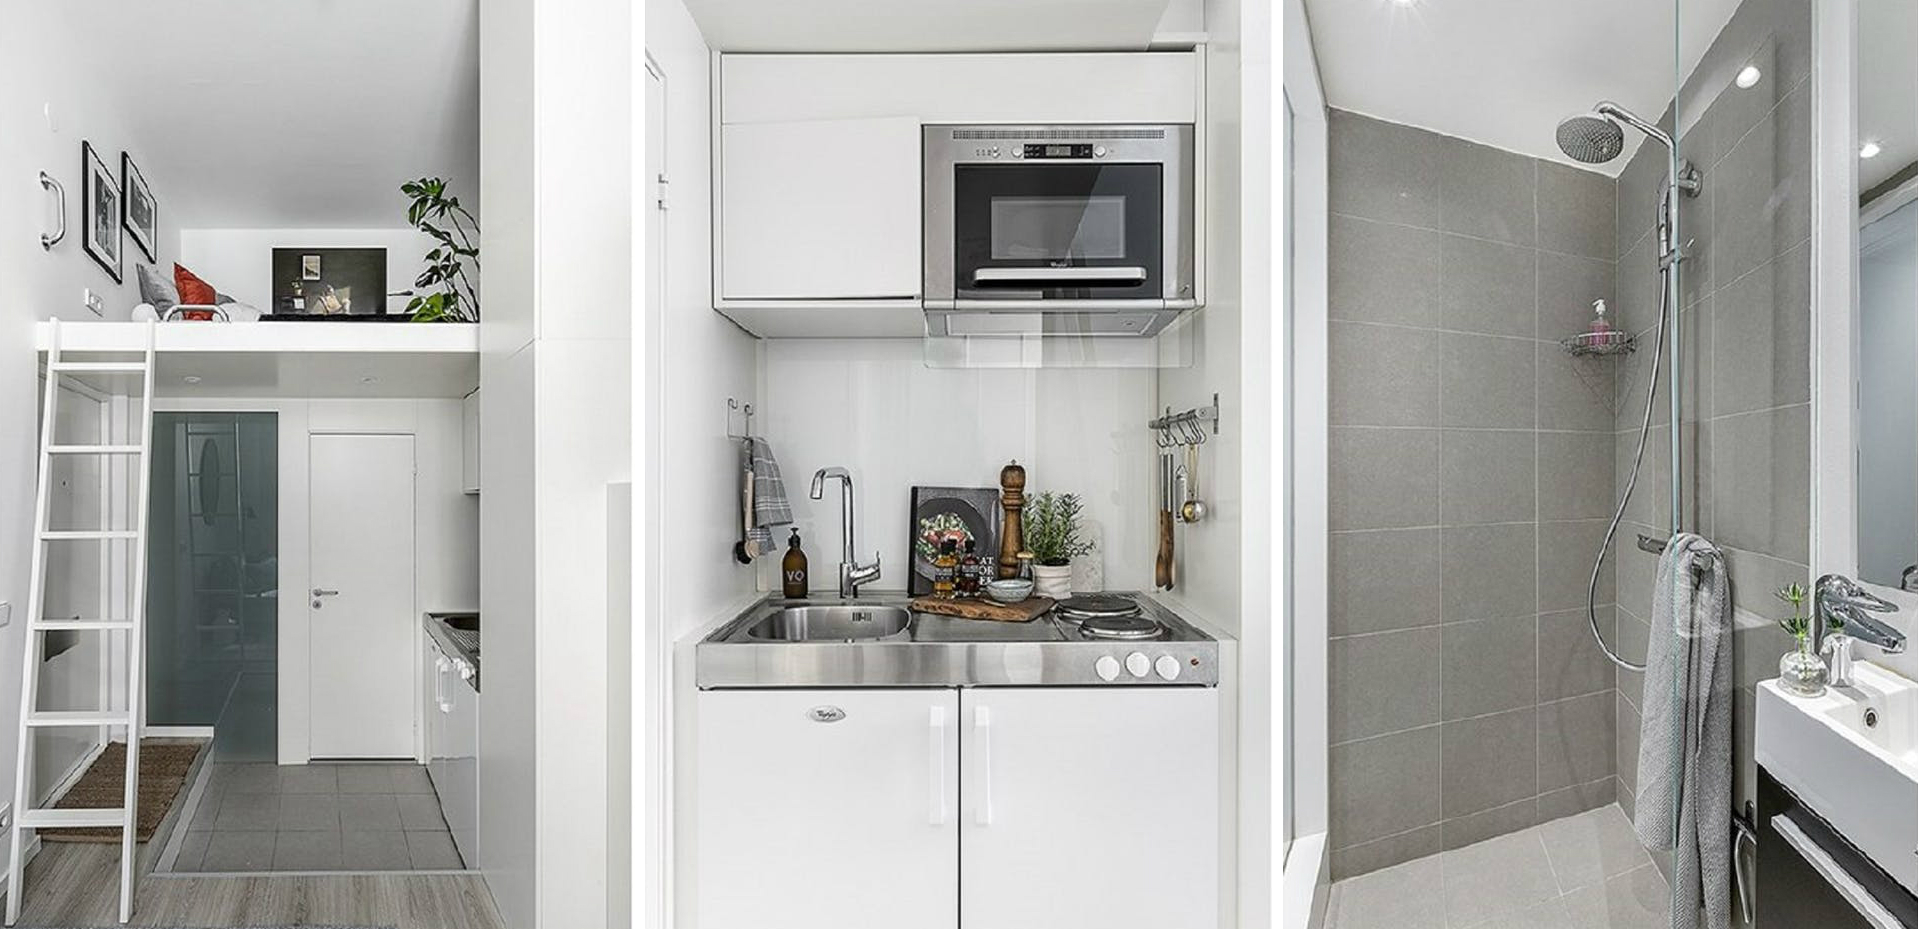 Take a closer look. Small living is taken to a stylish extreme in 100 square foot